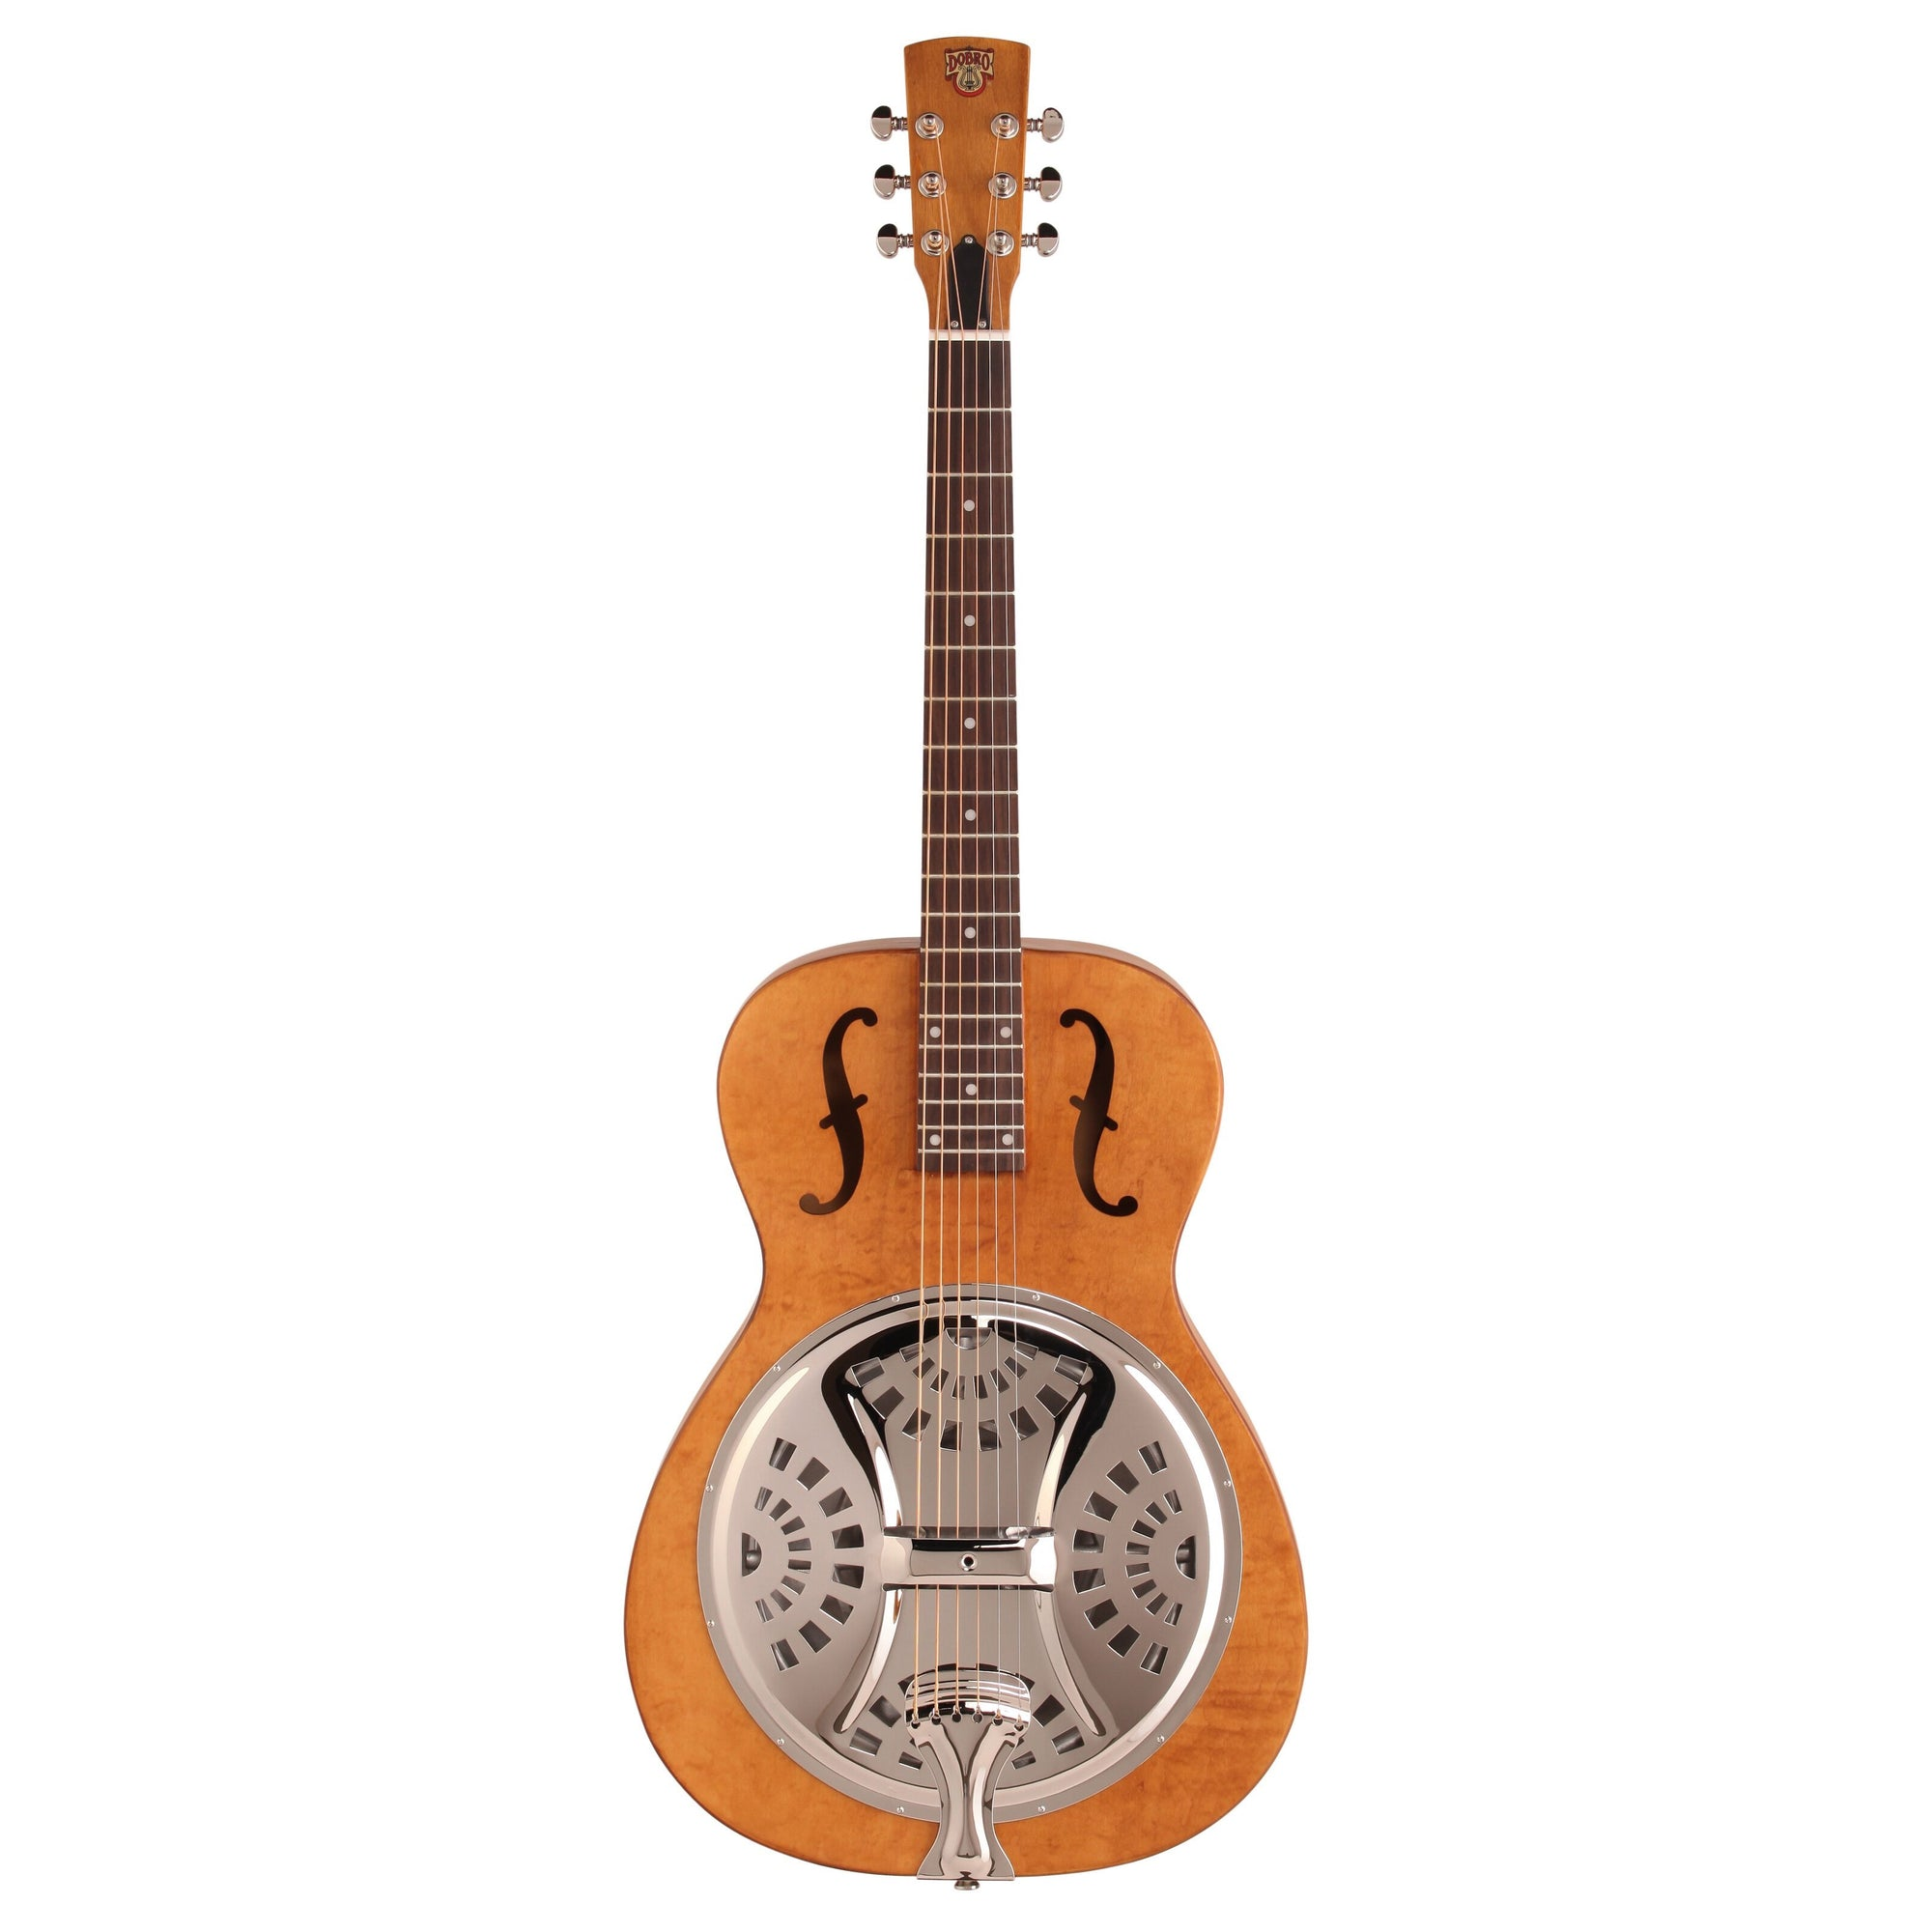 Epiphone Dobro Hound Dog Roundneck Resonator Guitar, Vintage Brown